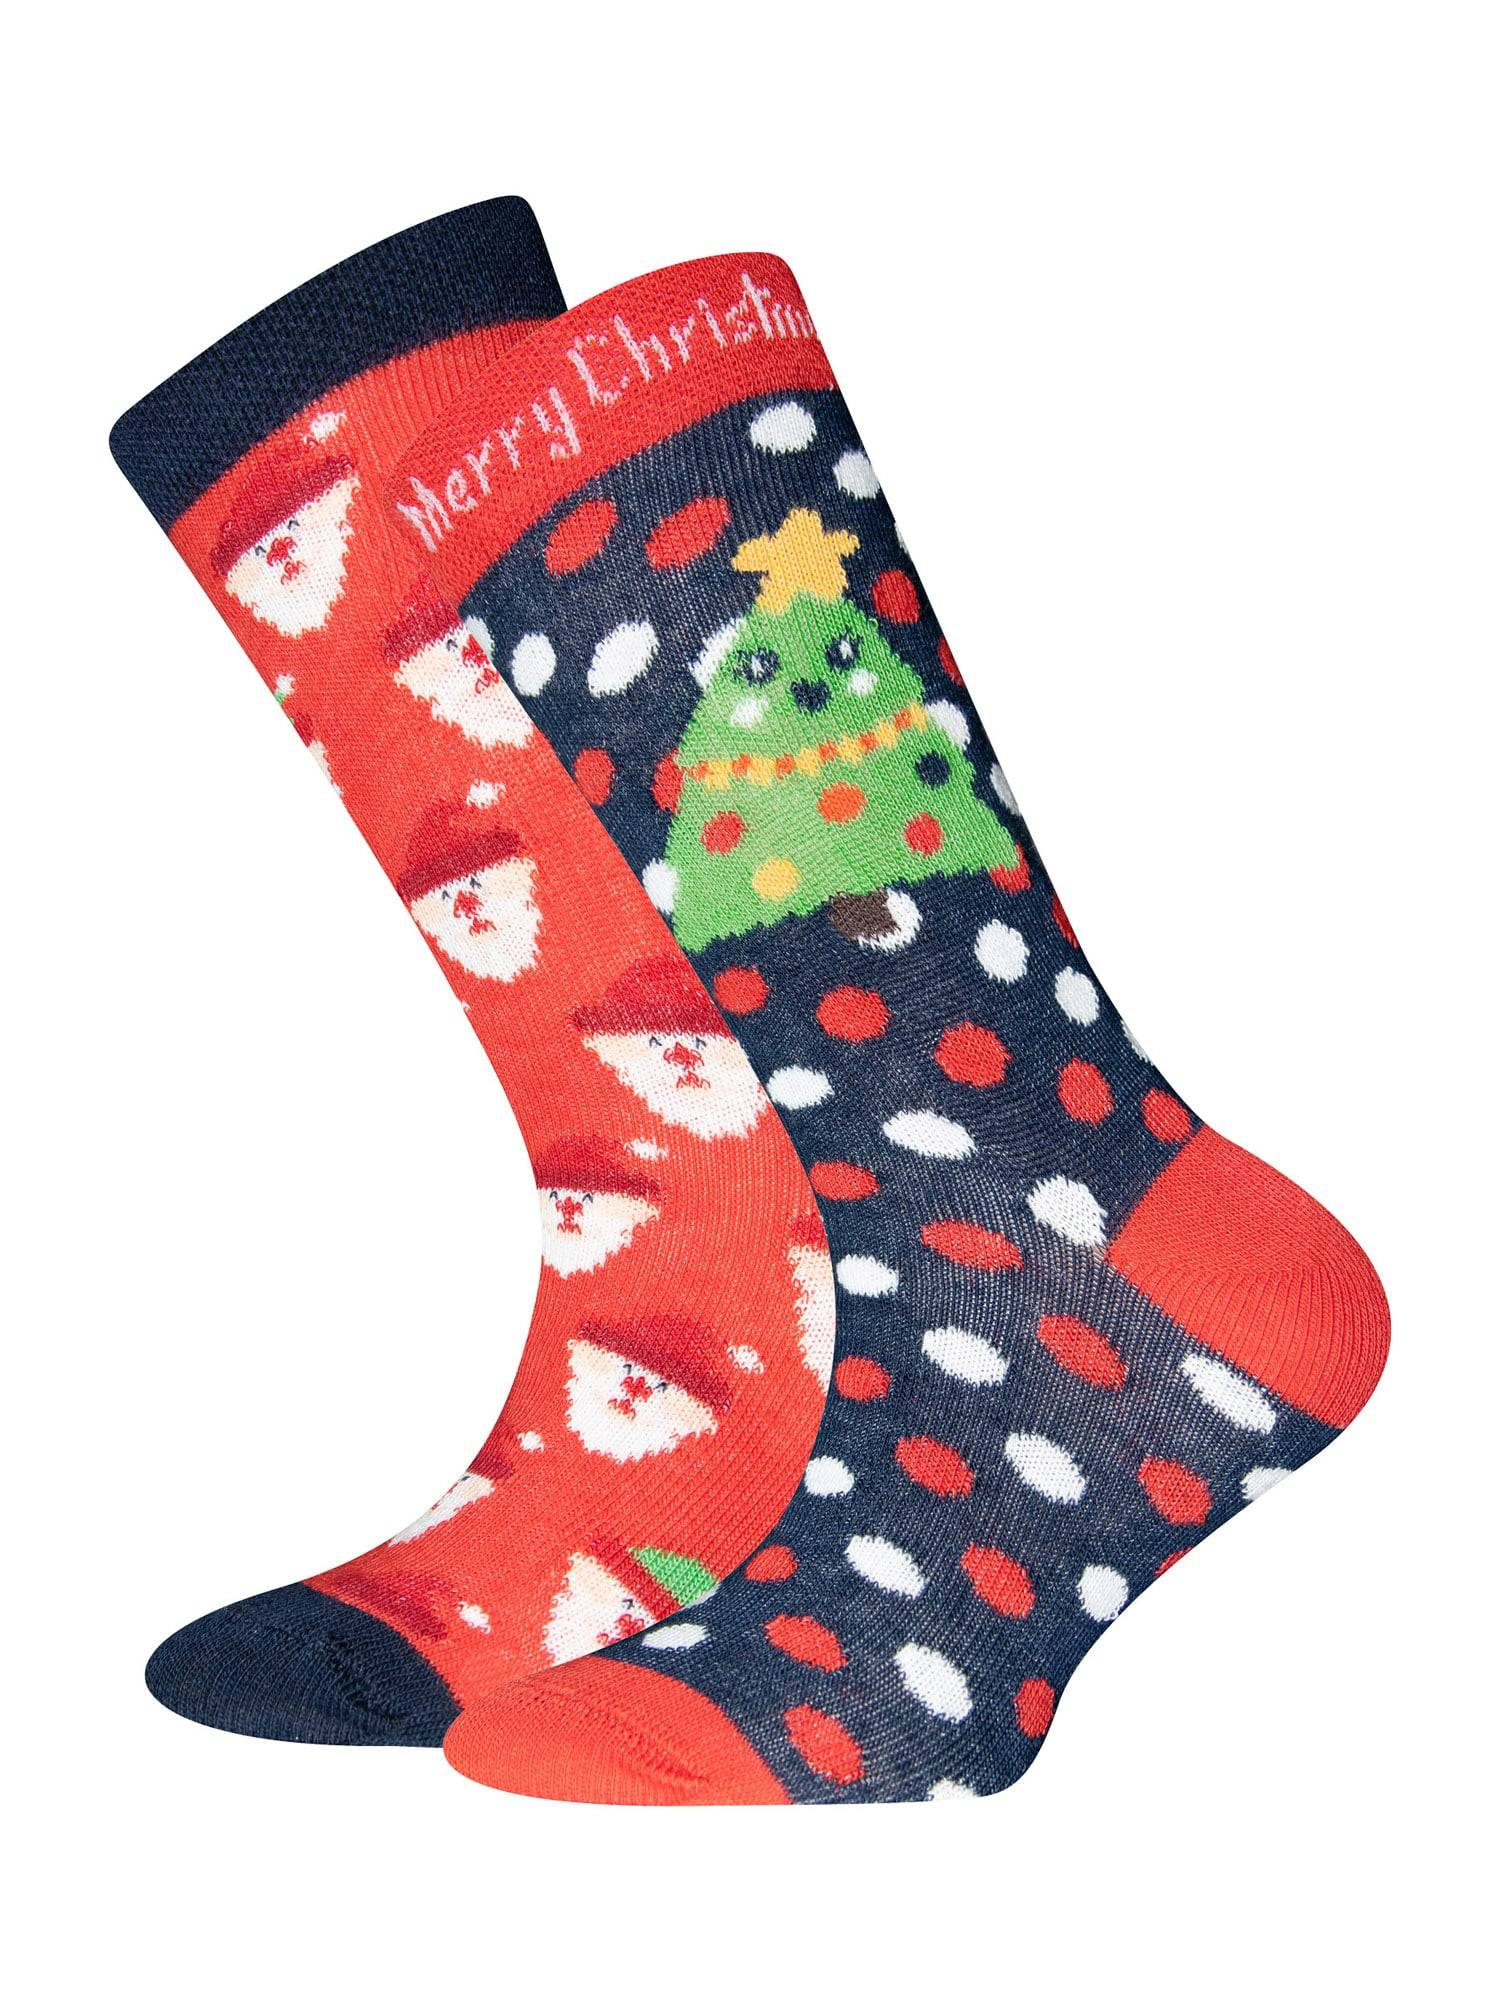 EWERS Chaussettes  - Bleu, Rouge - Taille: 39-42 - boy